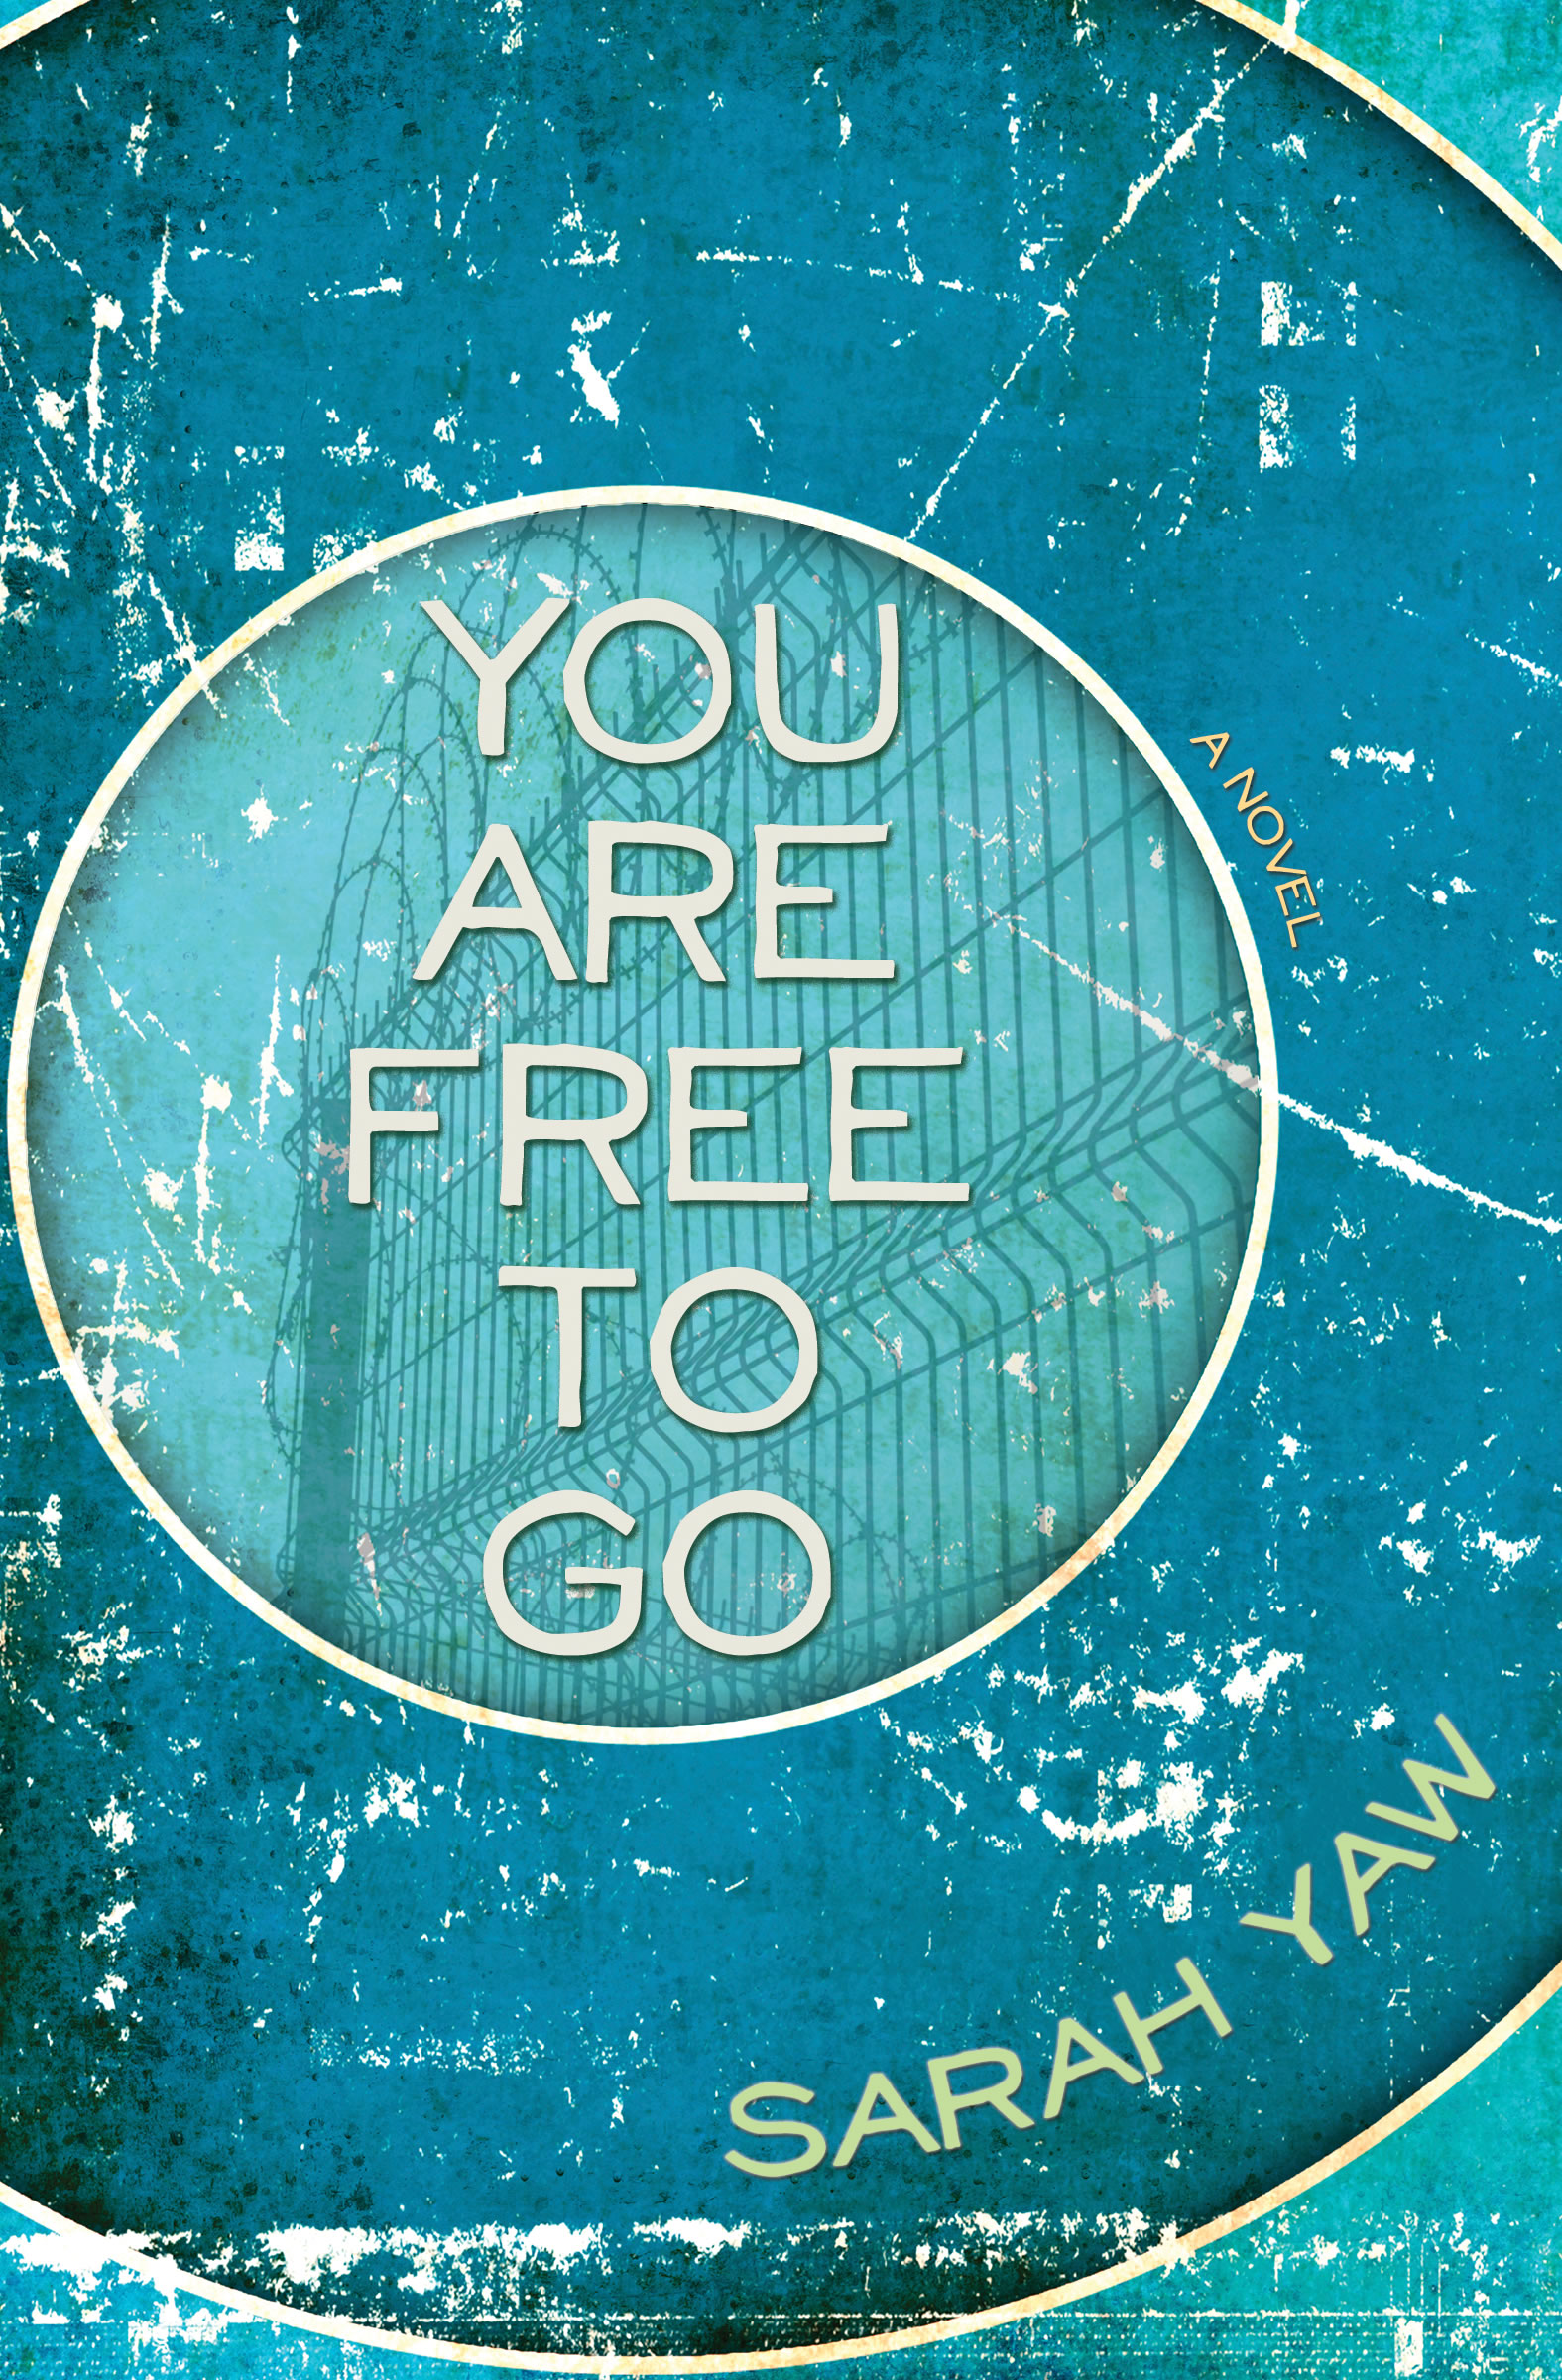 You Are Free to Go, a novel by Sarah Yaw